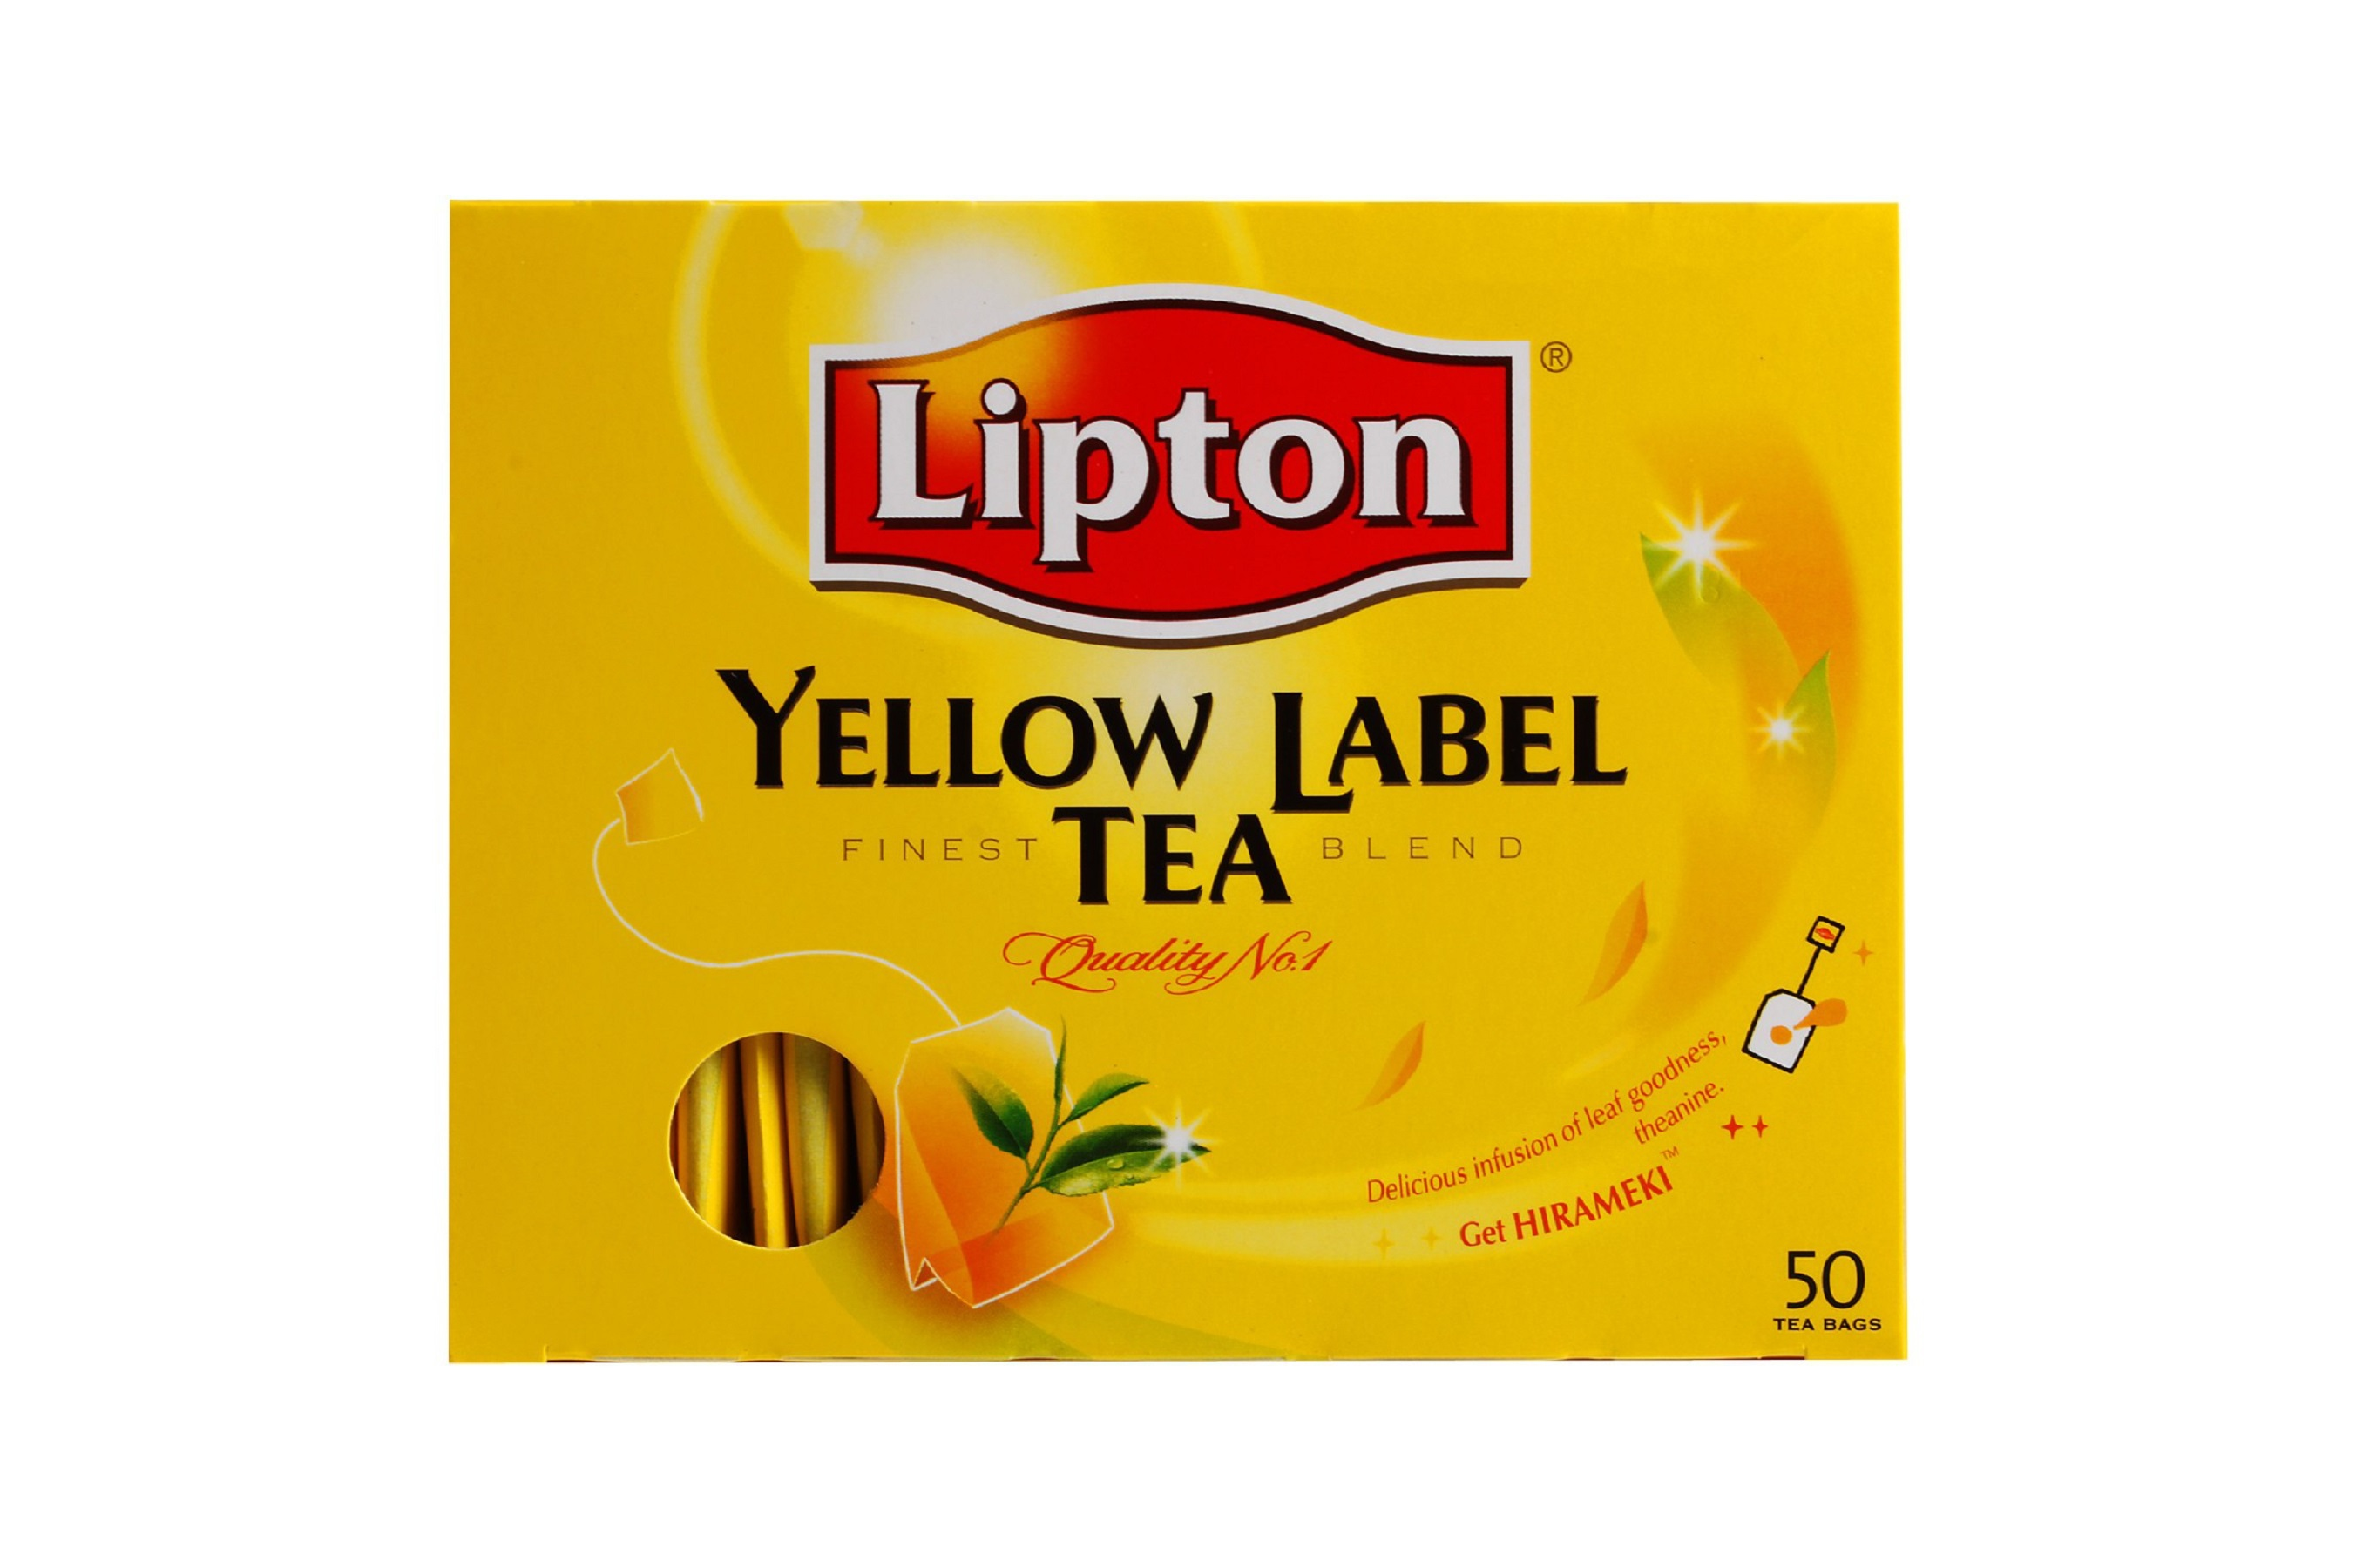 Lipton Wallpapers Hd